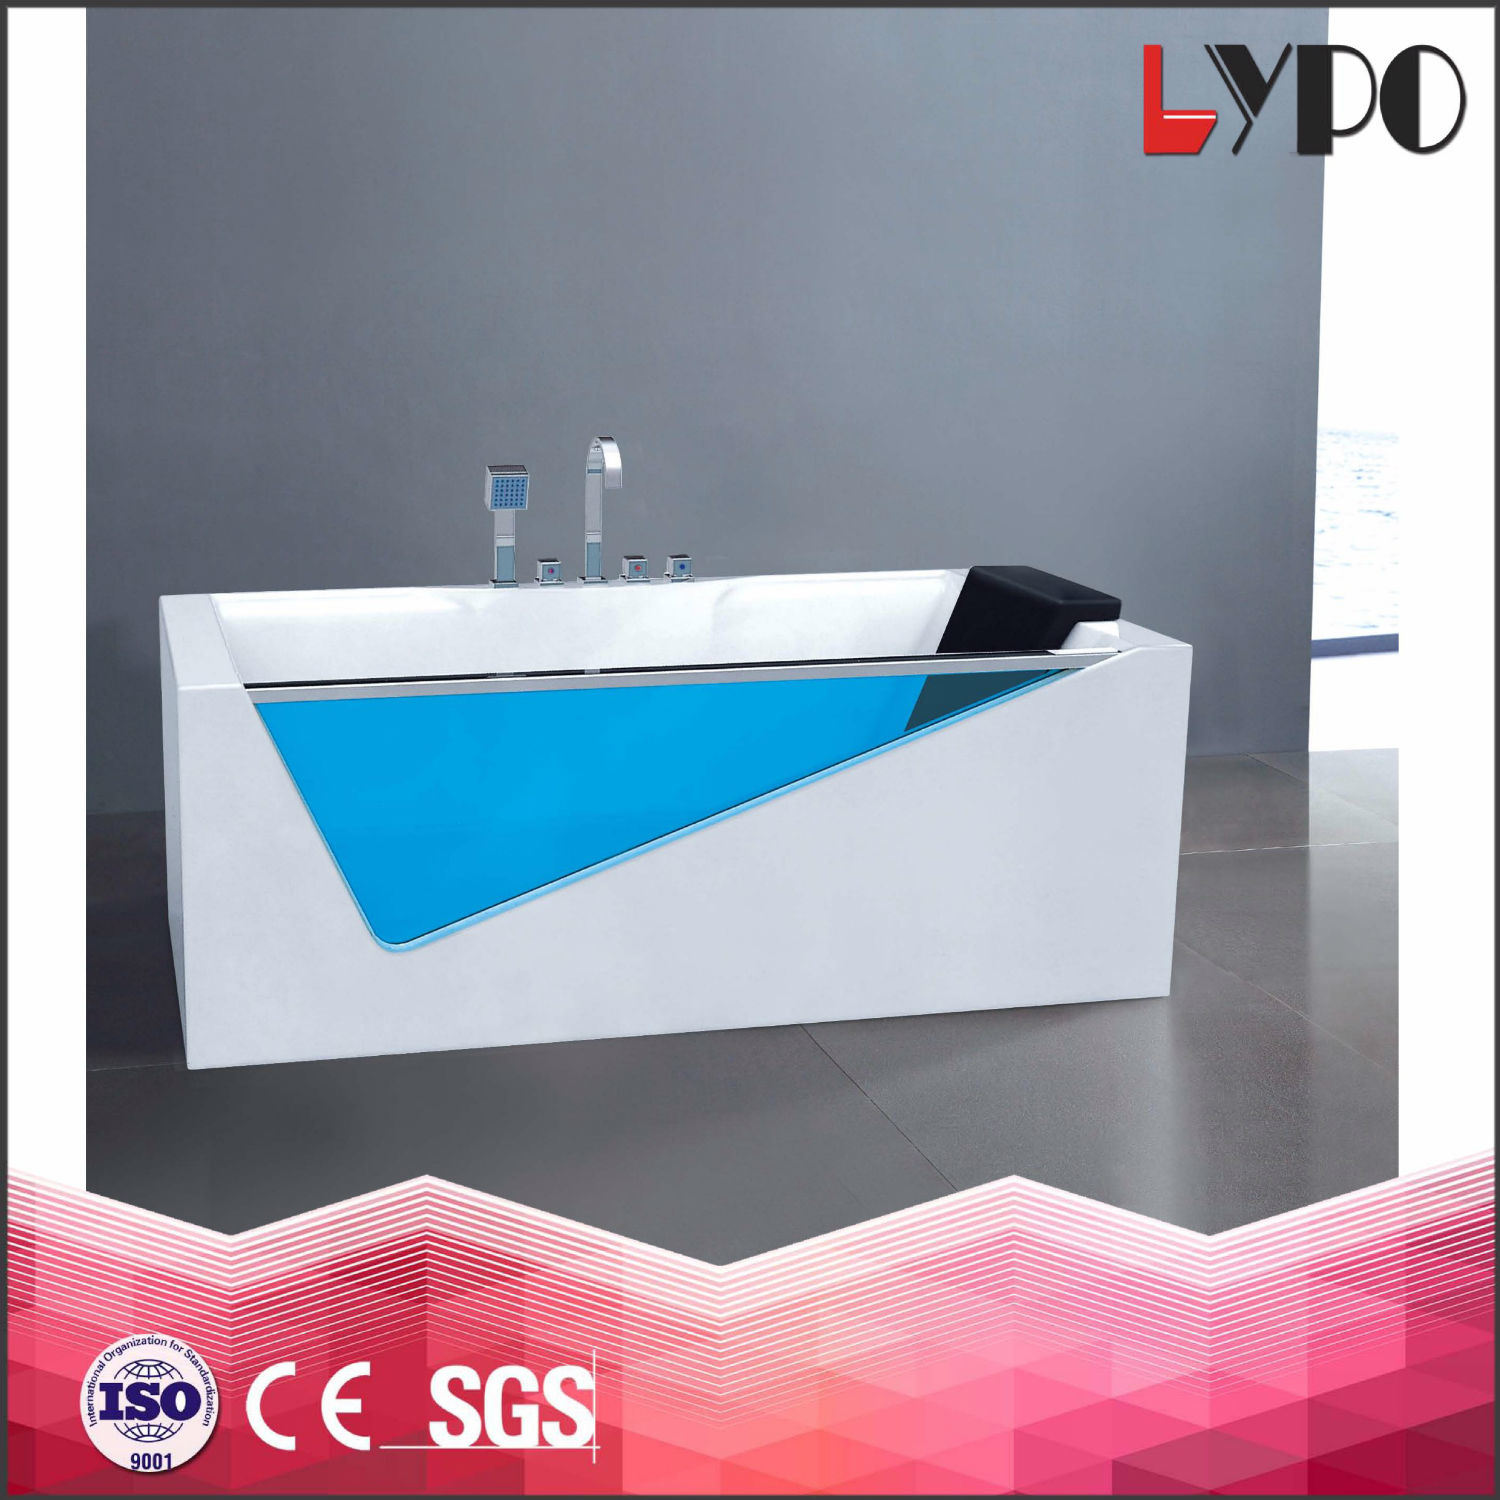 Water Jets For Bathtub - Bathtub Ideas